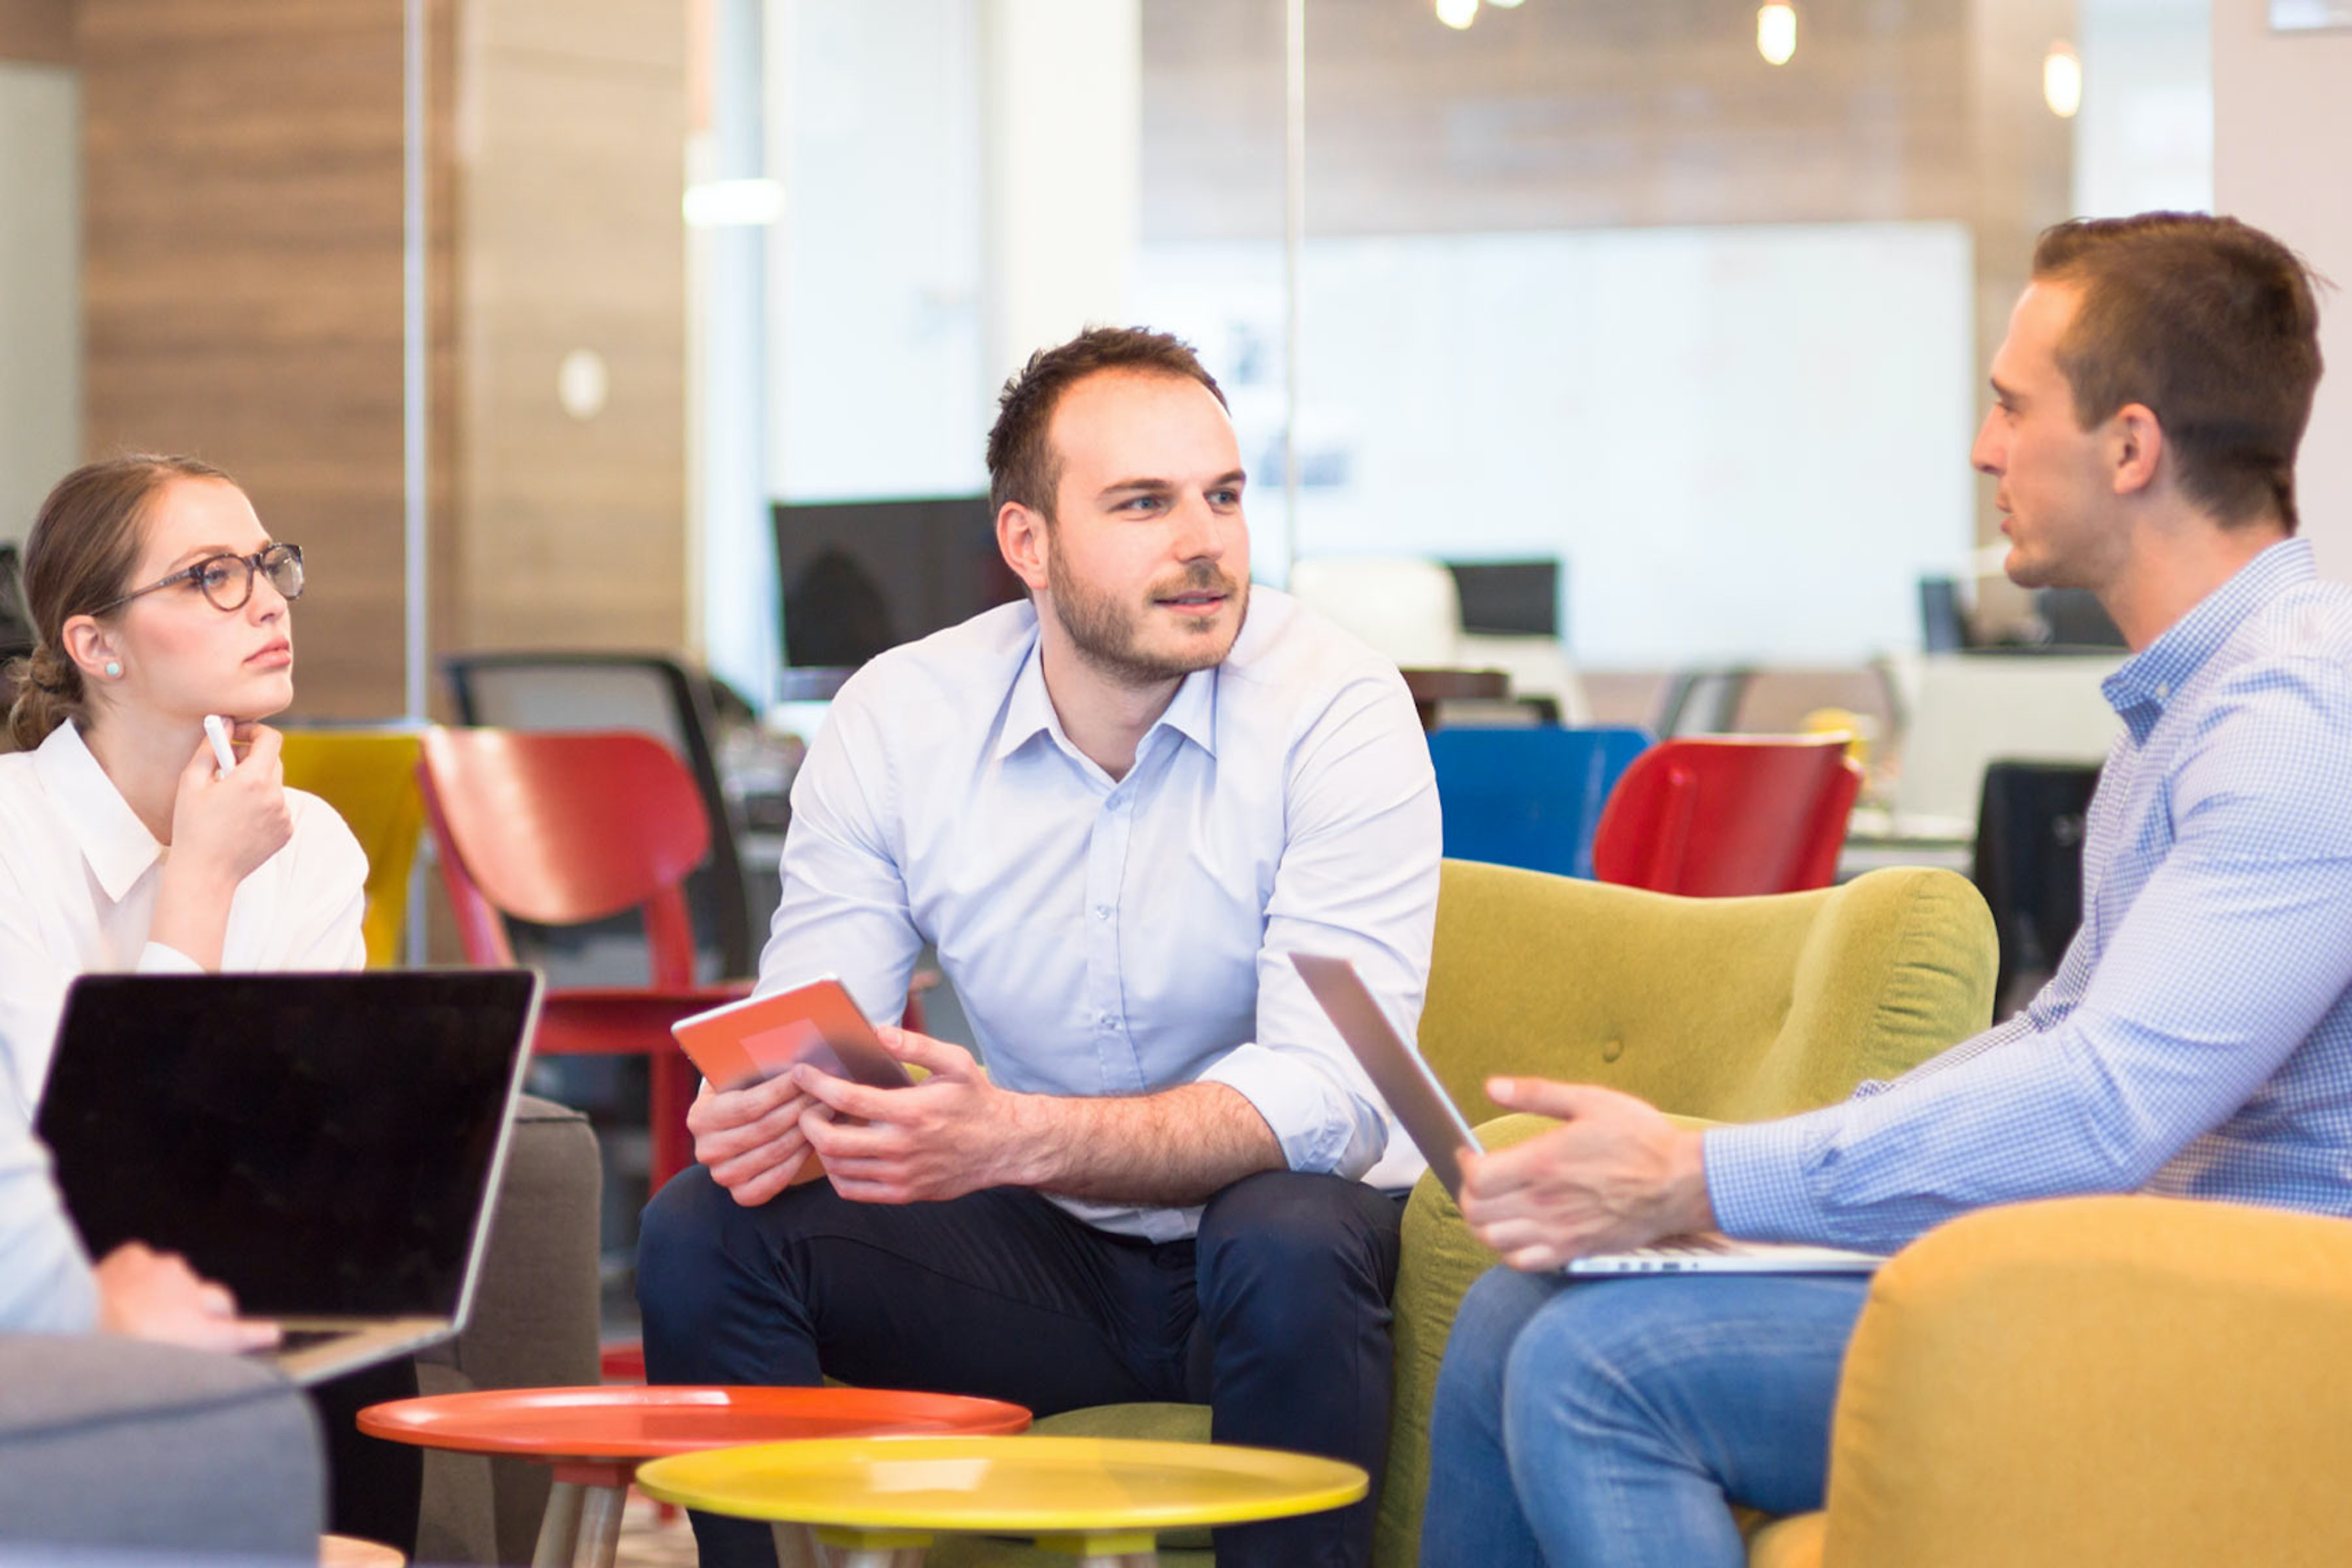 Three employees talking together in open plan office with devices